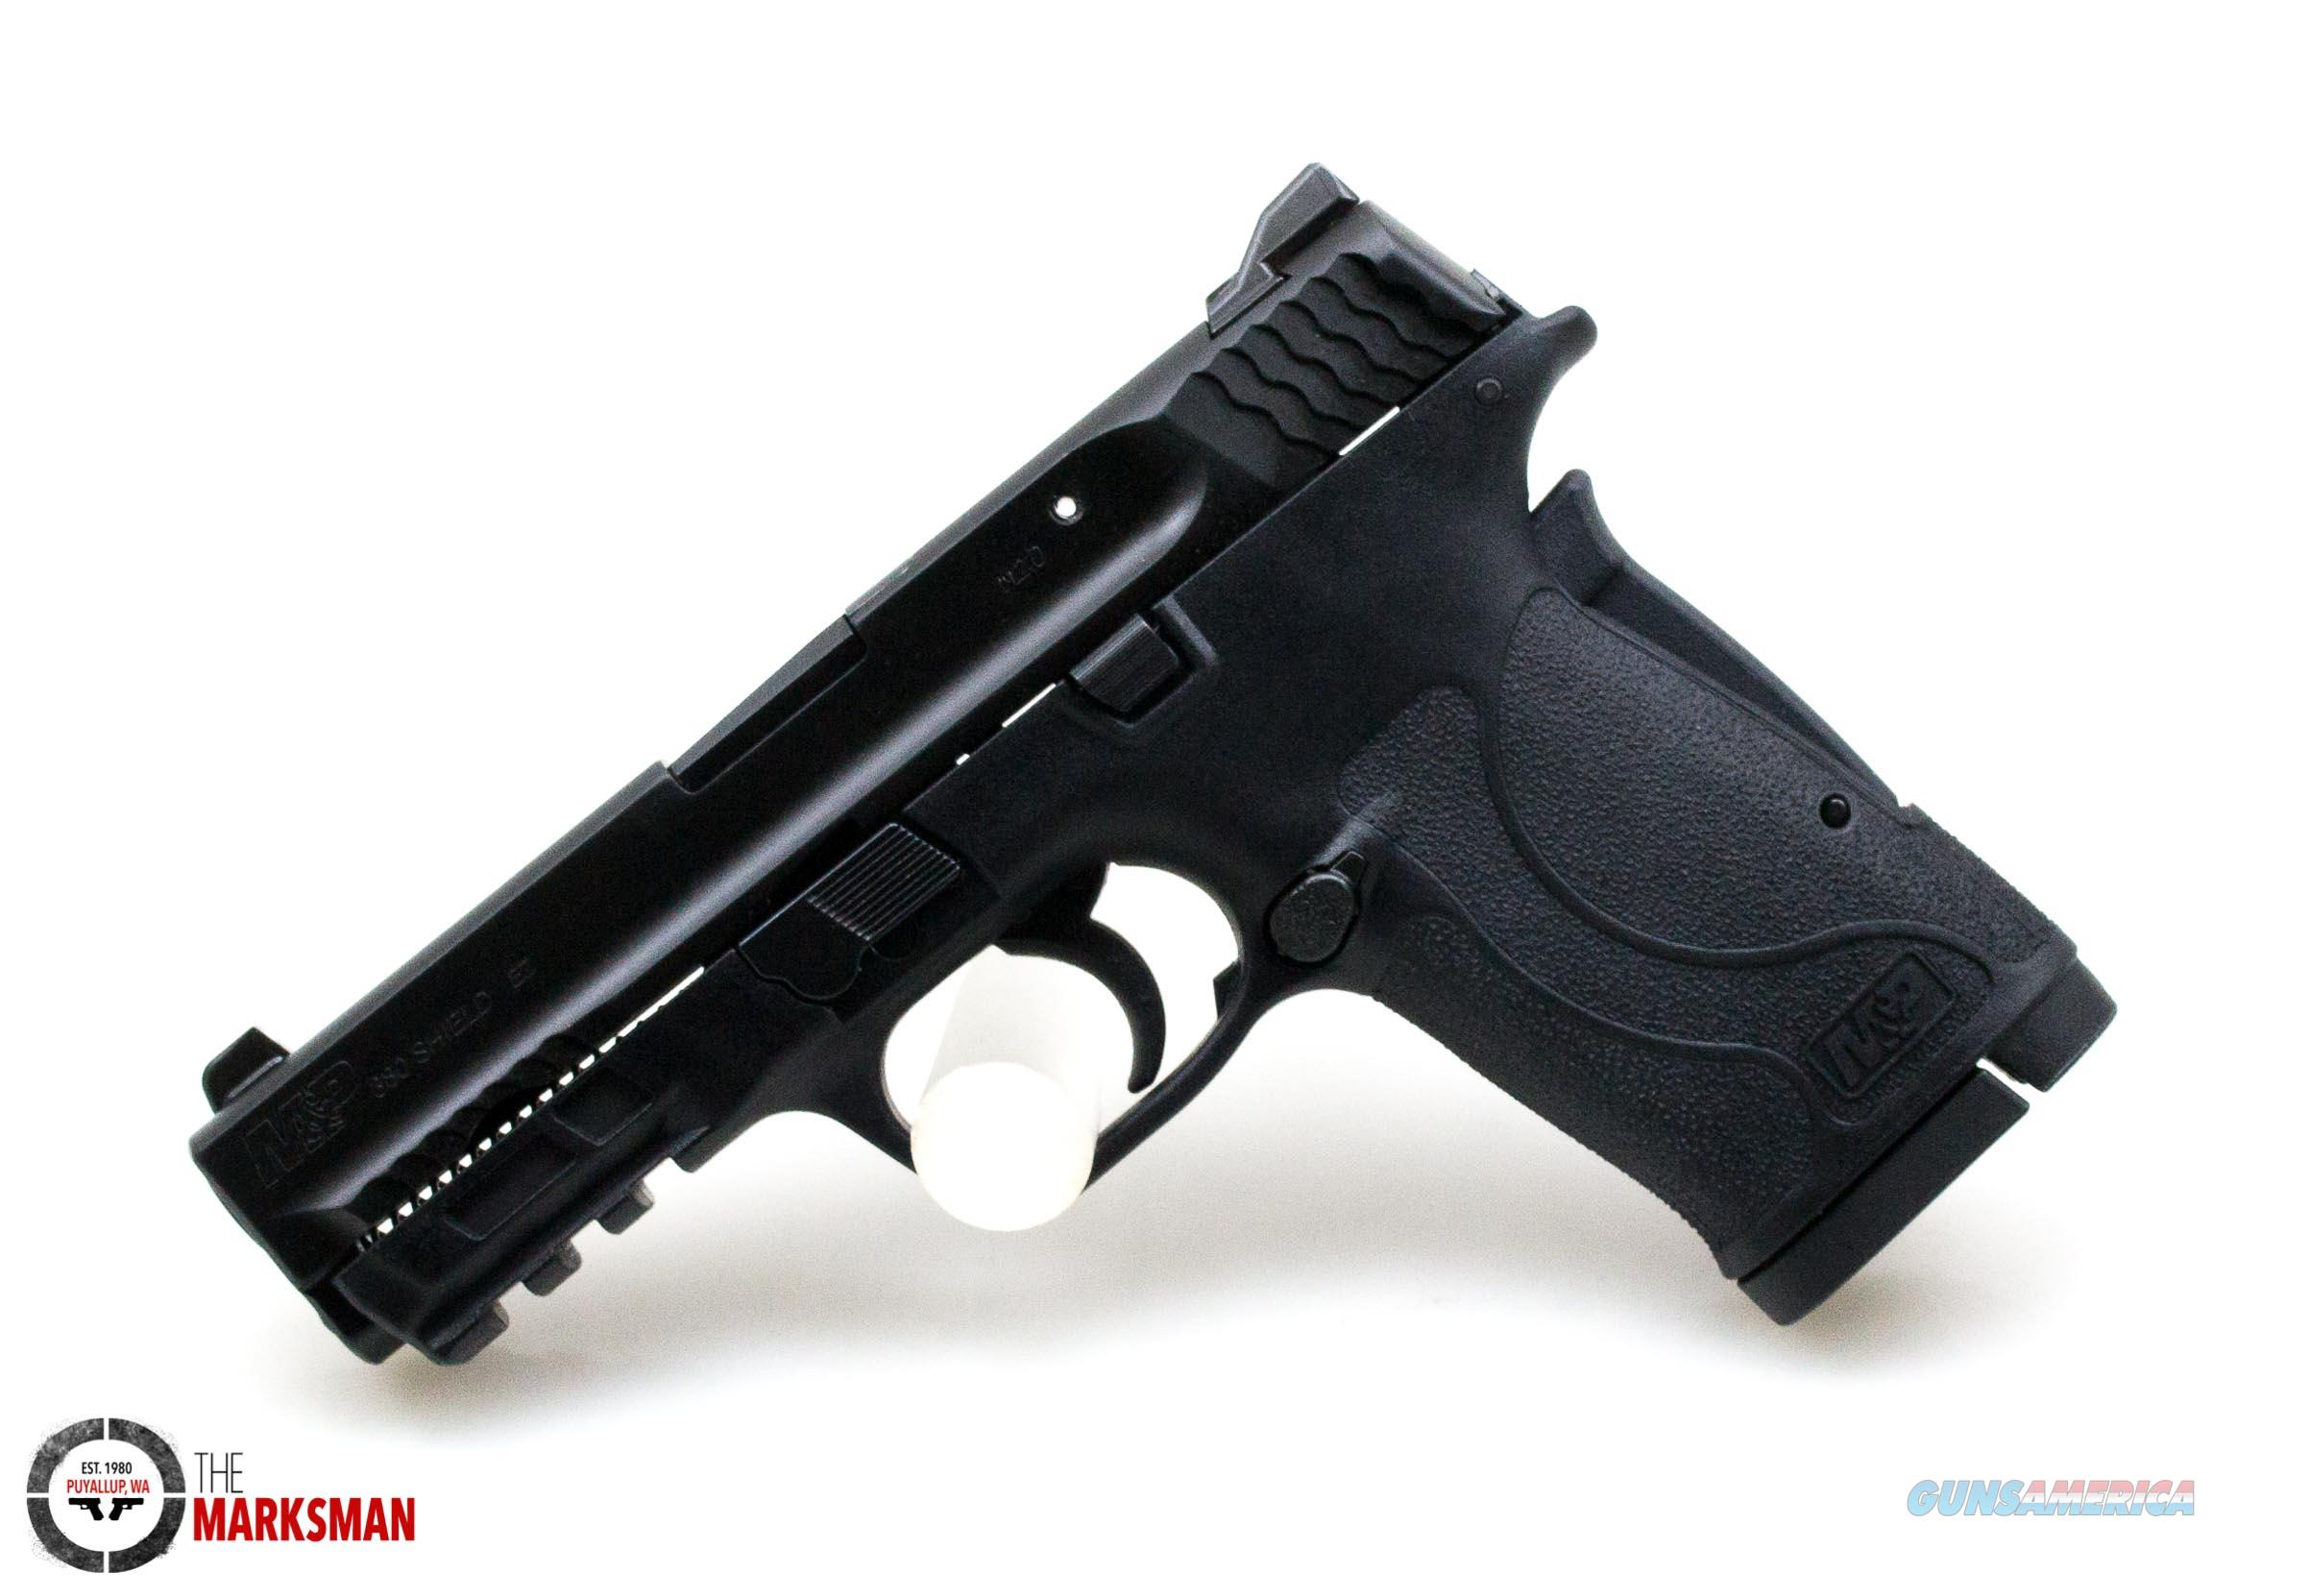 Smith and Wesson M&P380 Shield EZ, .380 ACP, No Thumb Safety NEW  Guns > Pistols > Smith & Wesson Pistols - Autos > Shield